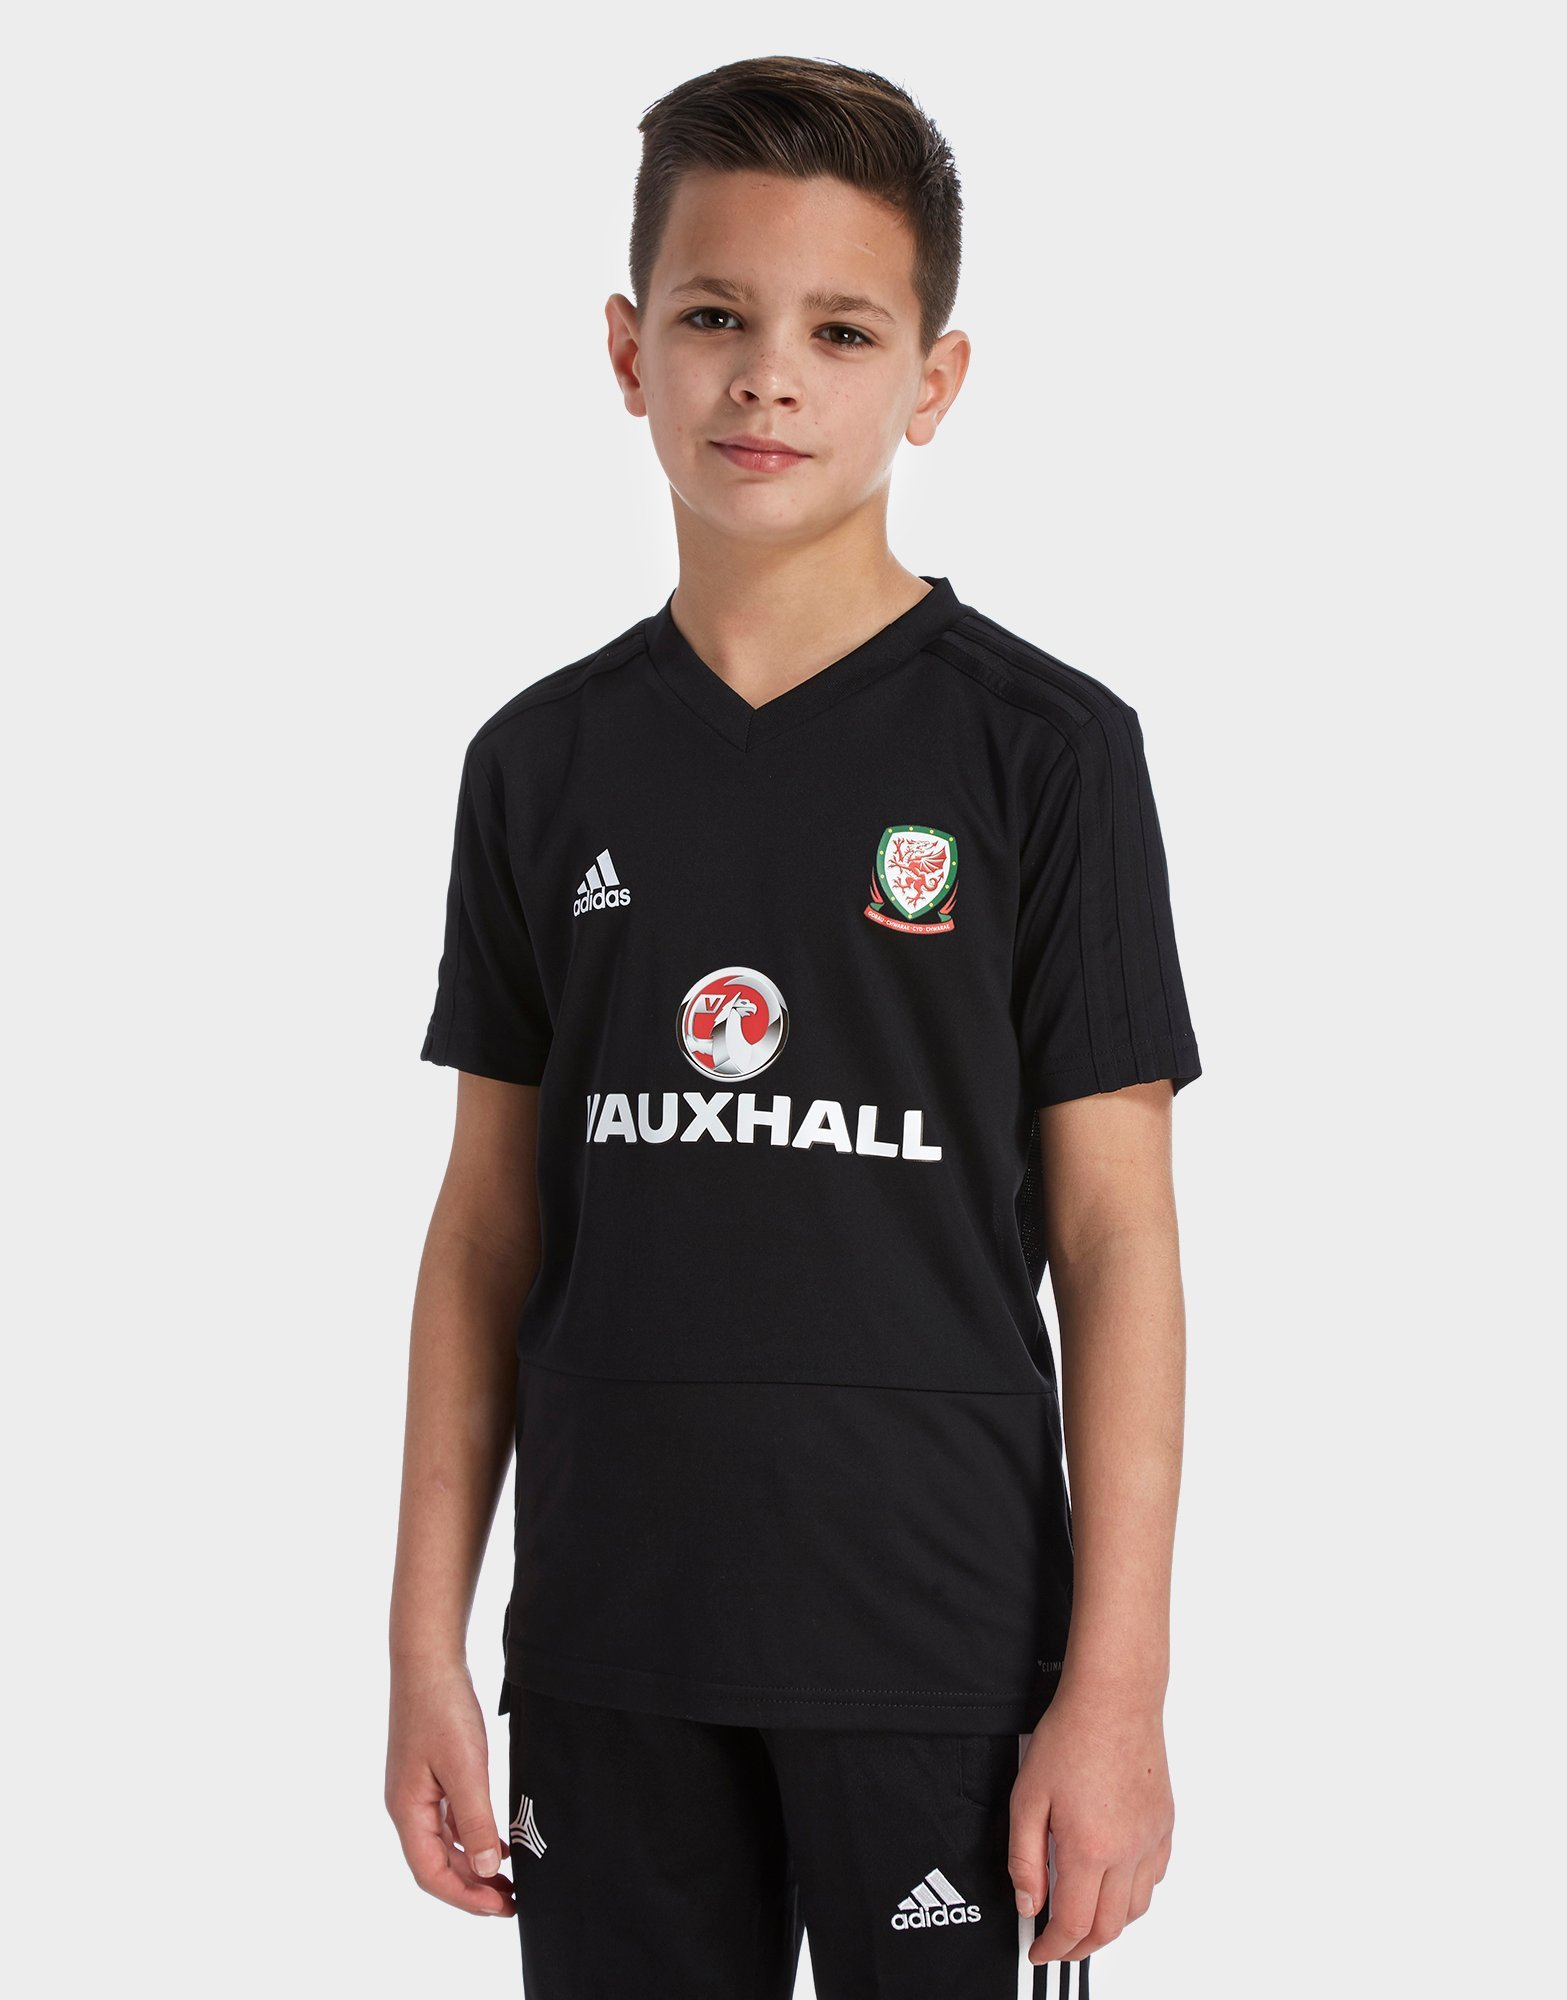 adidas FA Wales 2018/19 Training Shirt Junior